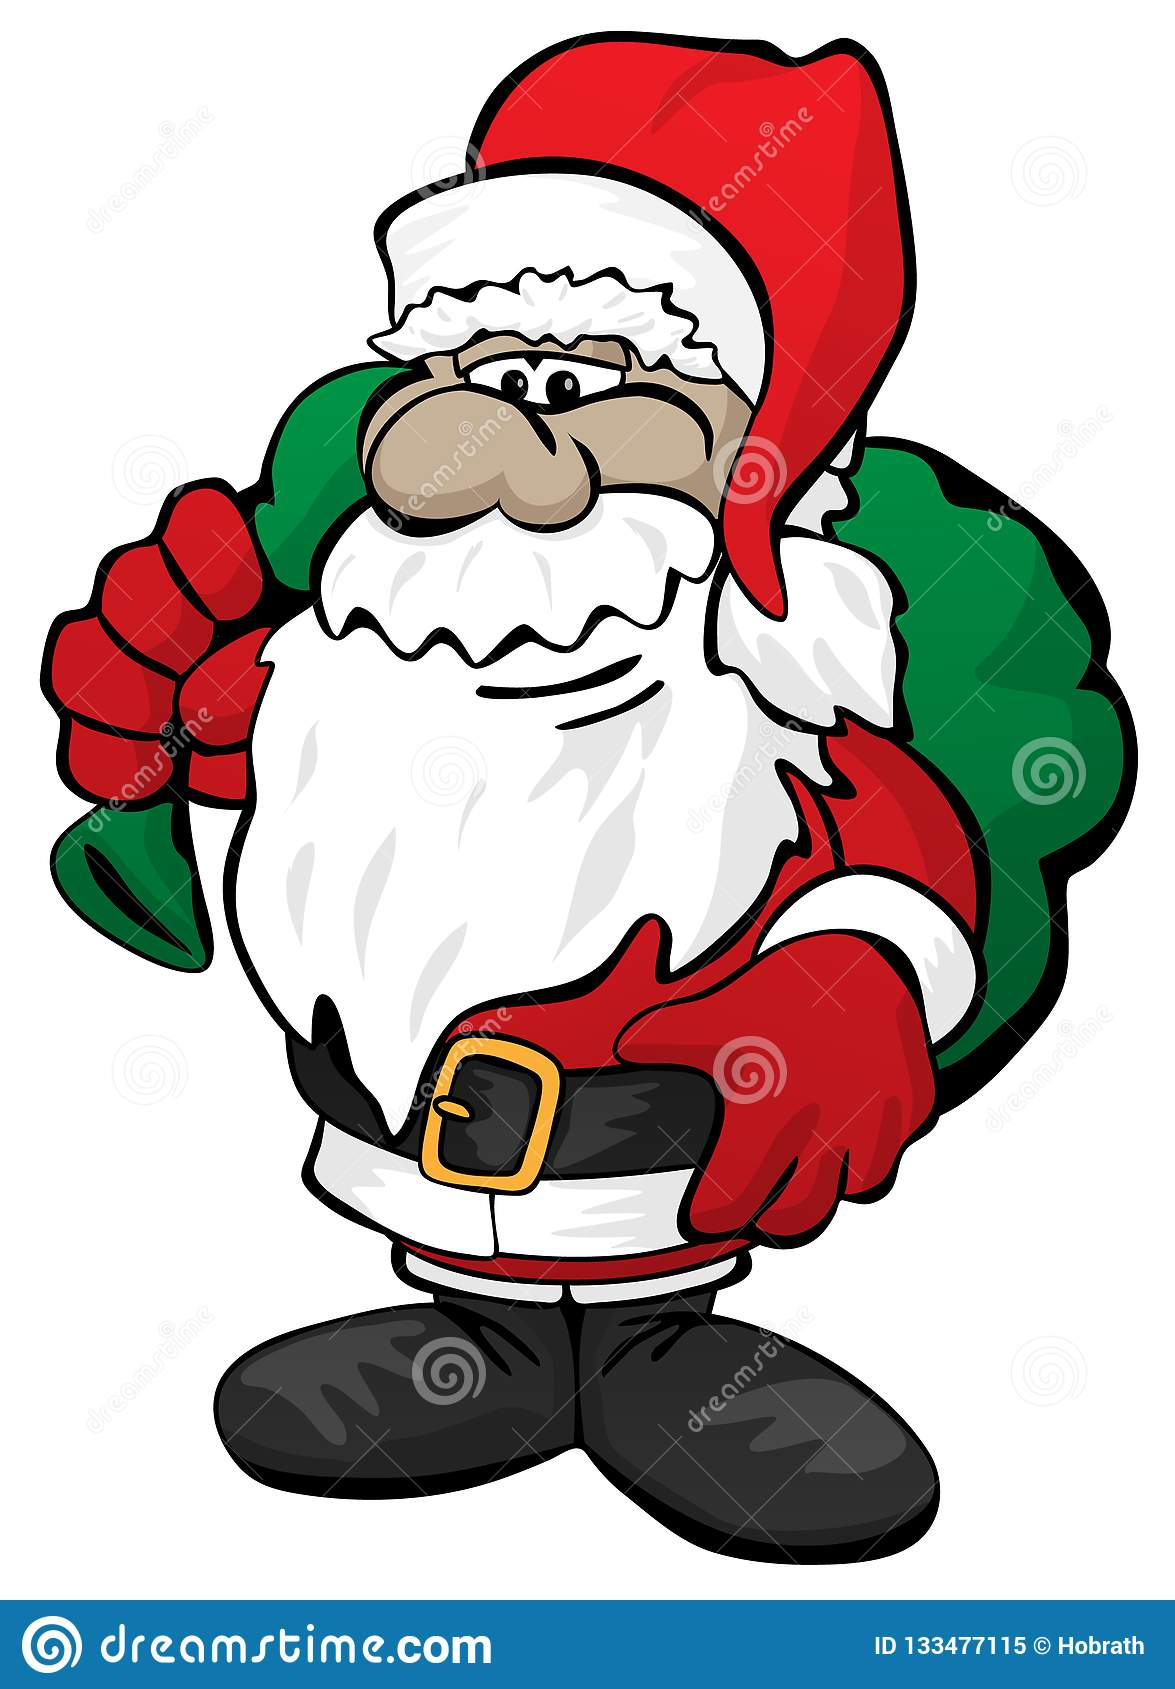 Cute Christmas Santa Claus with Toy Sack Cartoon Vector Illustration